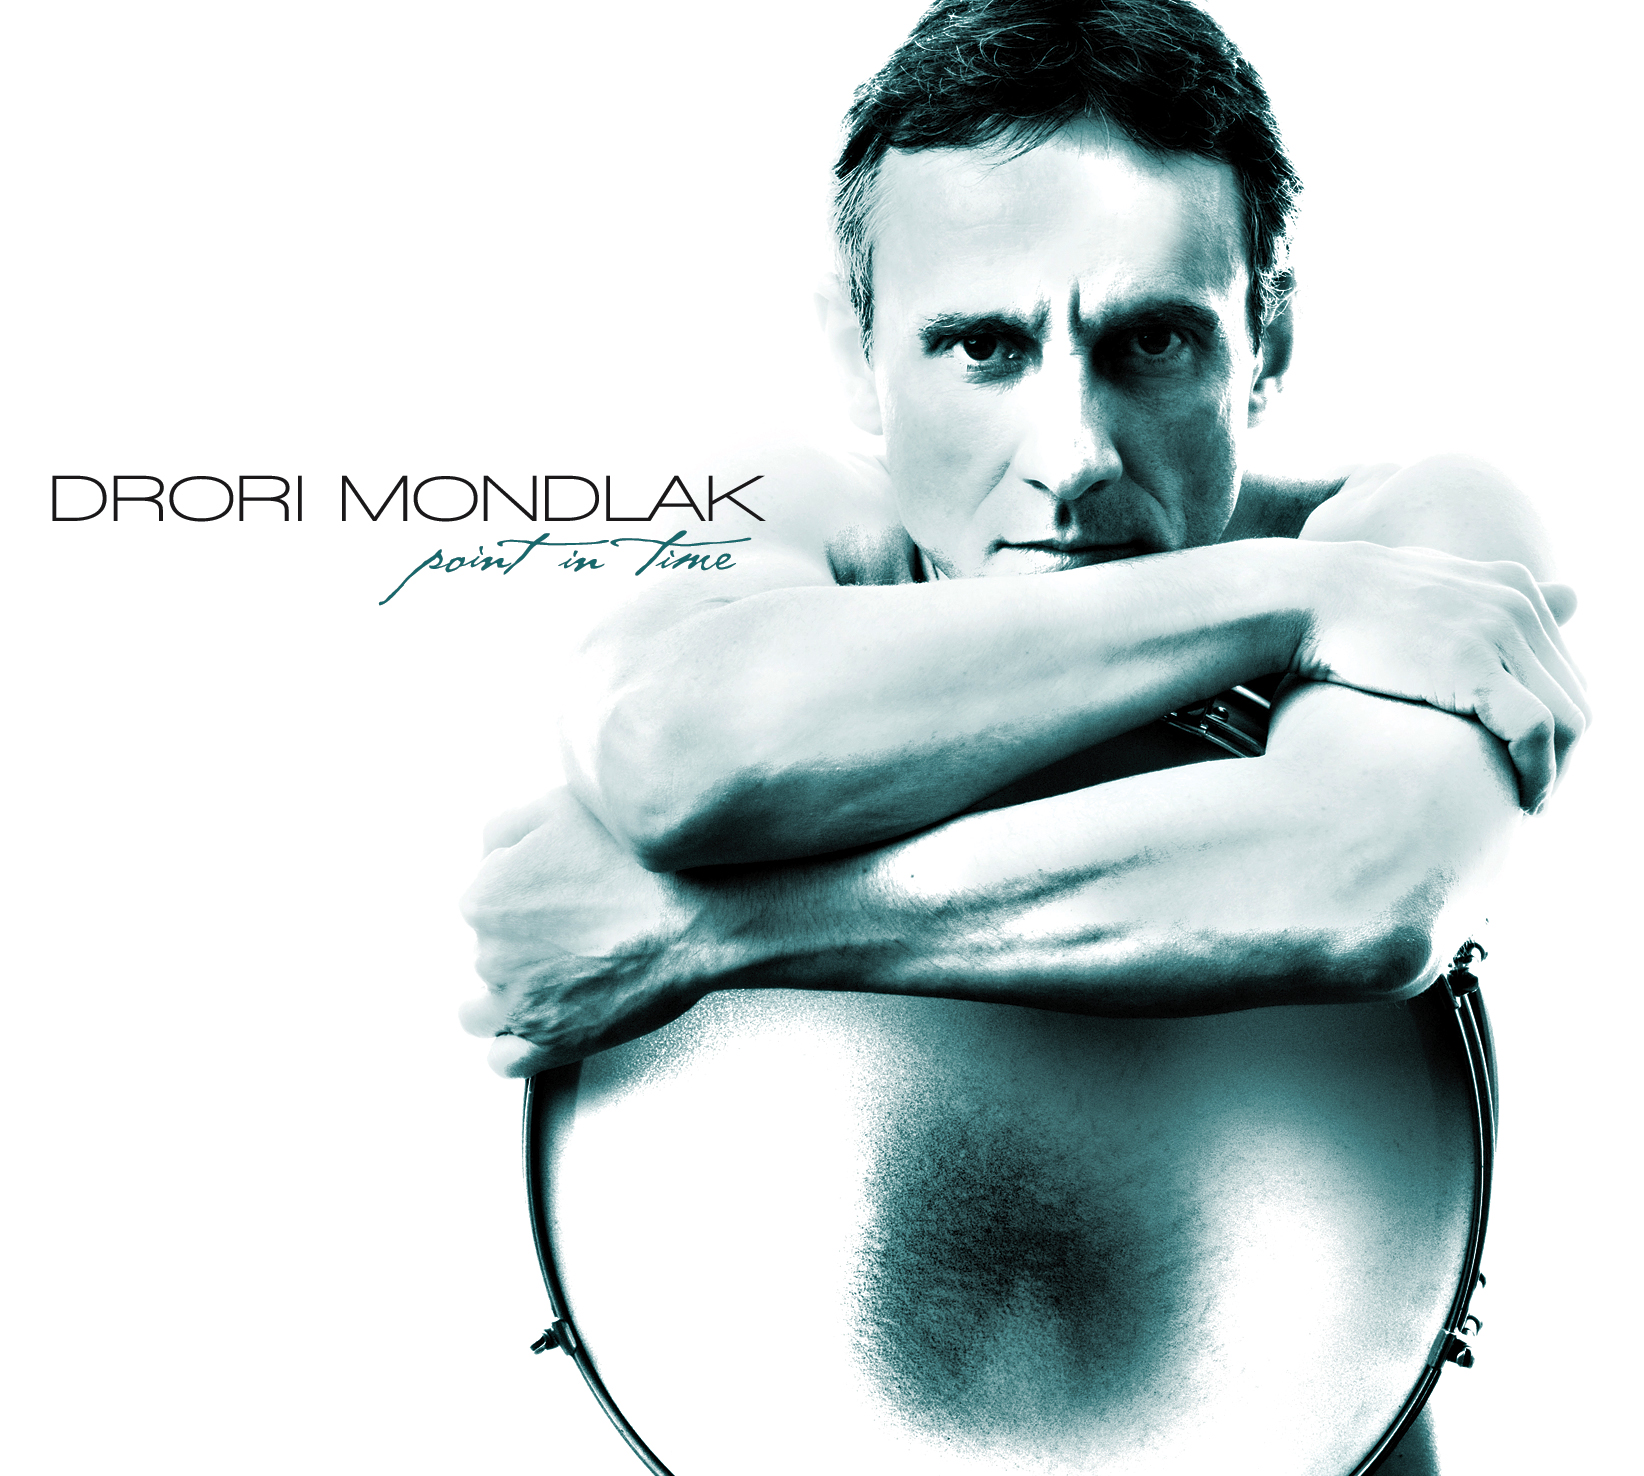 """""""Point in Time"""" Recording from Drori Mondlak"""